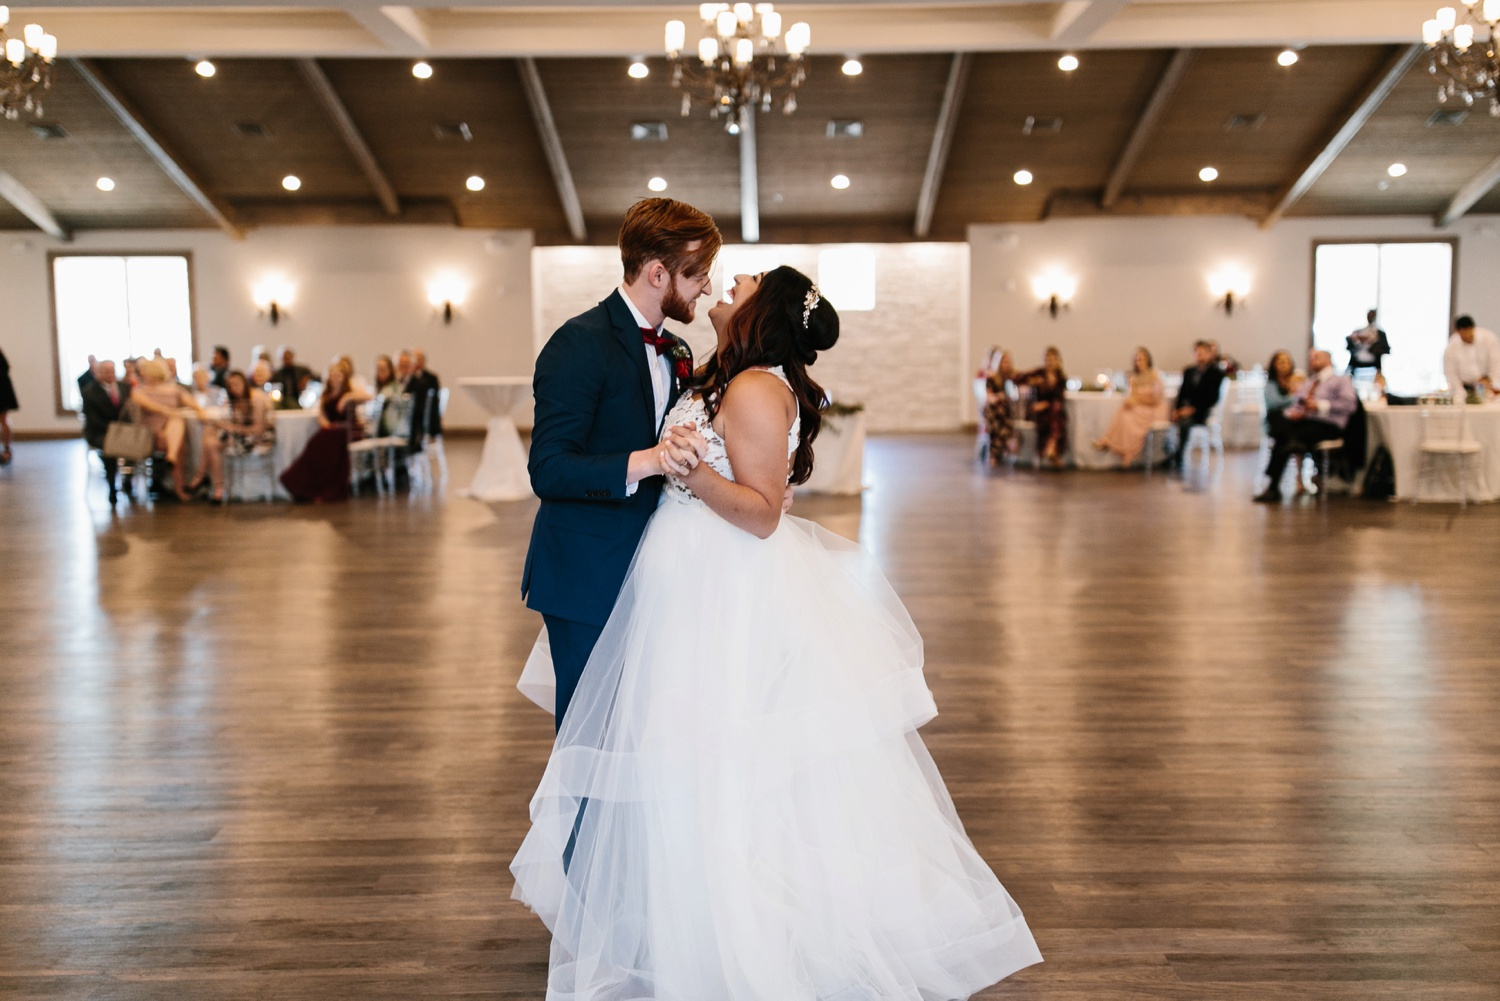 Grant + Lysette | a vibrant, deep burgundy and navy, and mixed metals wedding at Hidden Pines Chapel by North Texas Wedding Photographer Rachel Meagan Photography 136